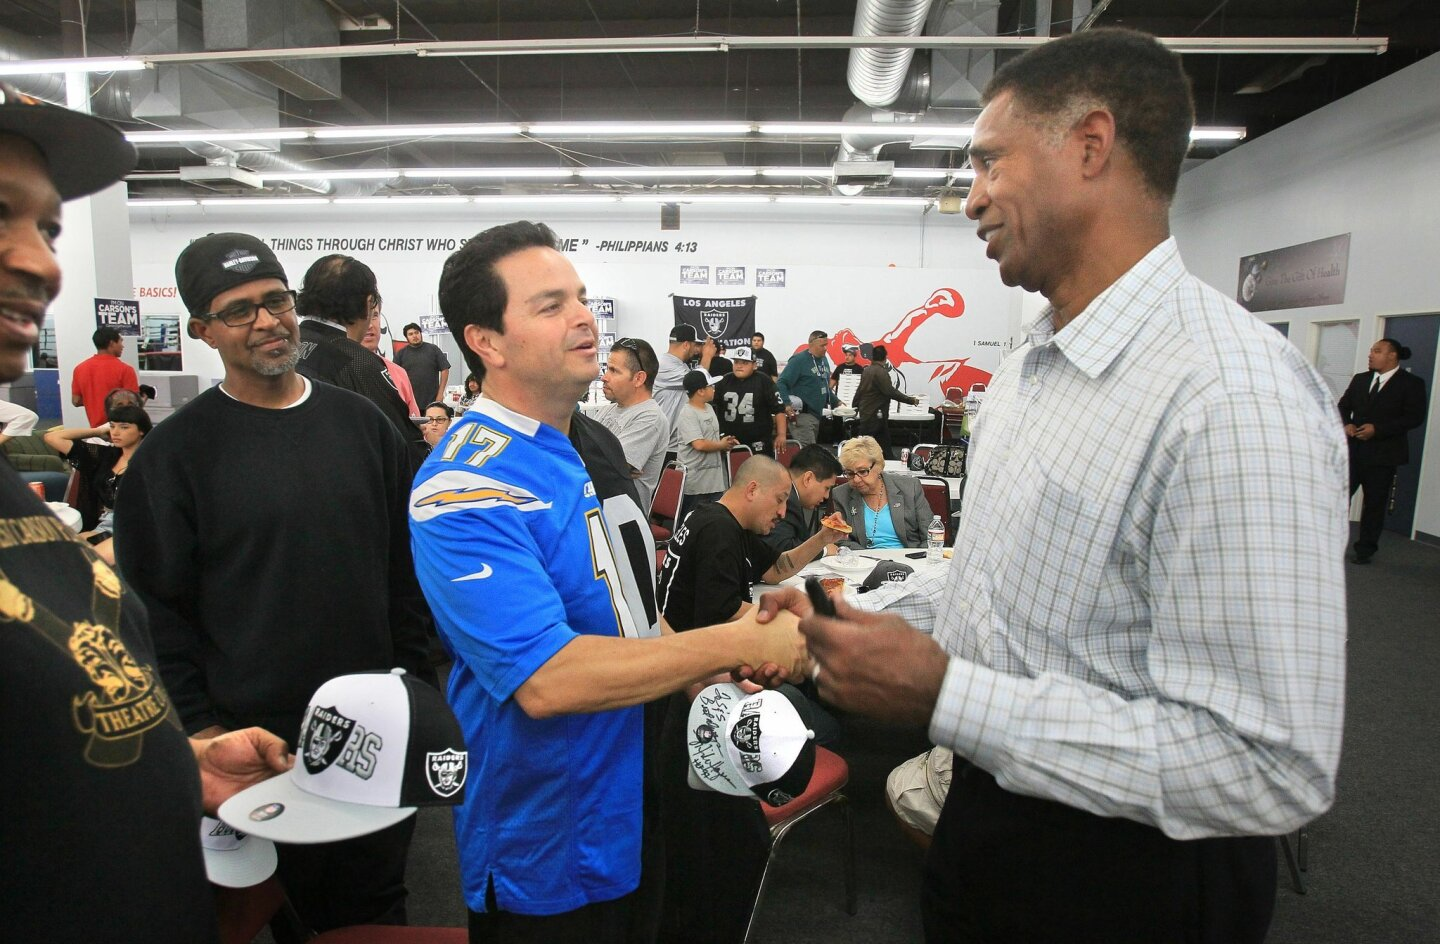 Mike Haynes, at right, a former Raiders player in the NFL Hall of Fame, and San Diego resident, shakes hands with Carson Councilmember Albert Robles wearing a special Chargers/Raiders jersey after he autographed a Raiders hat for him.